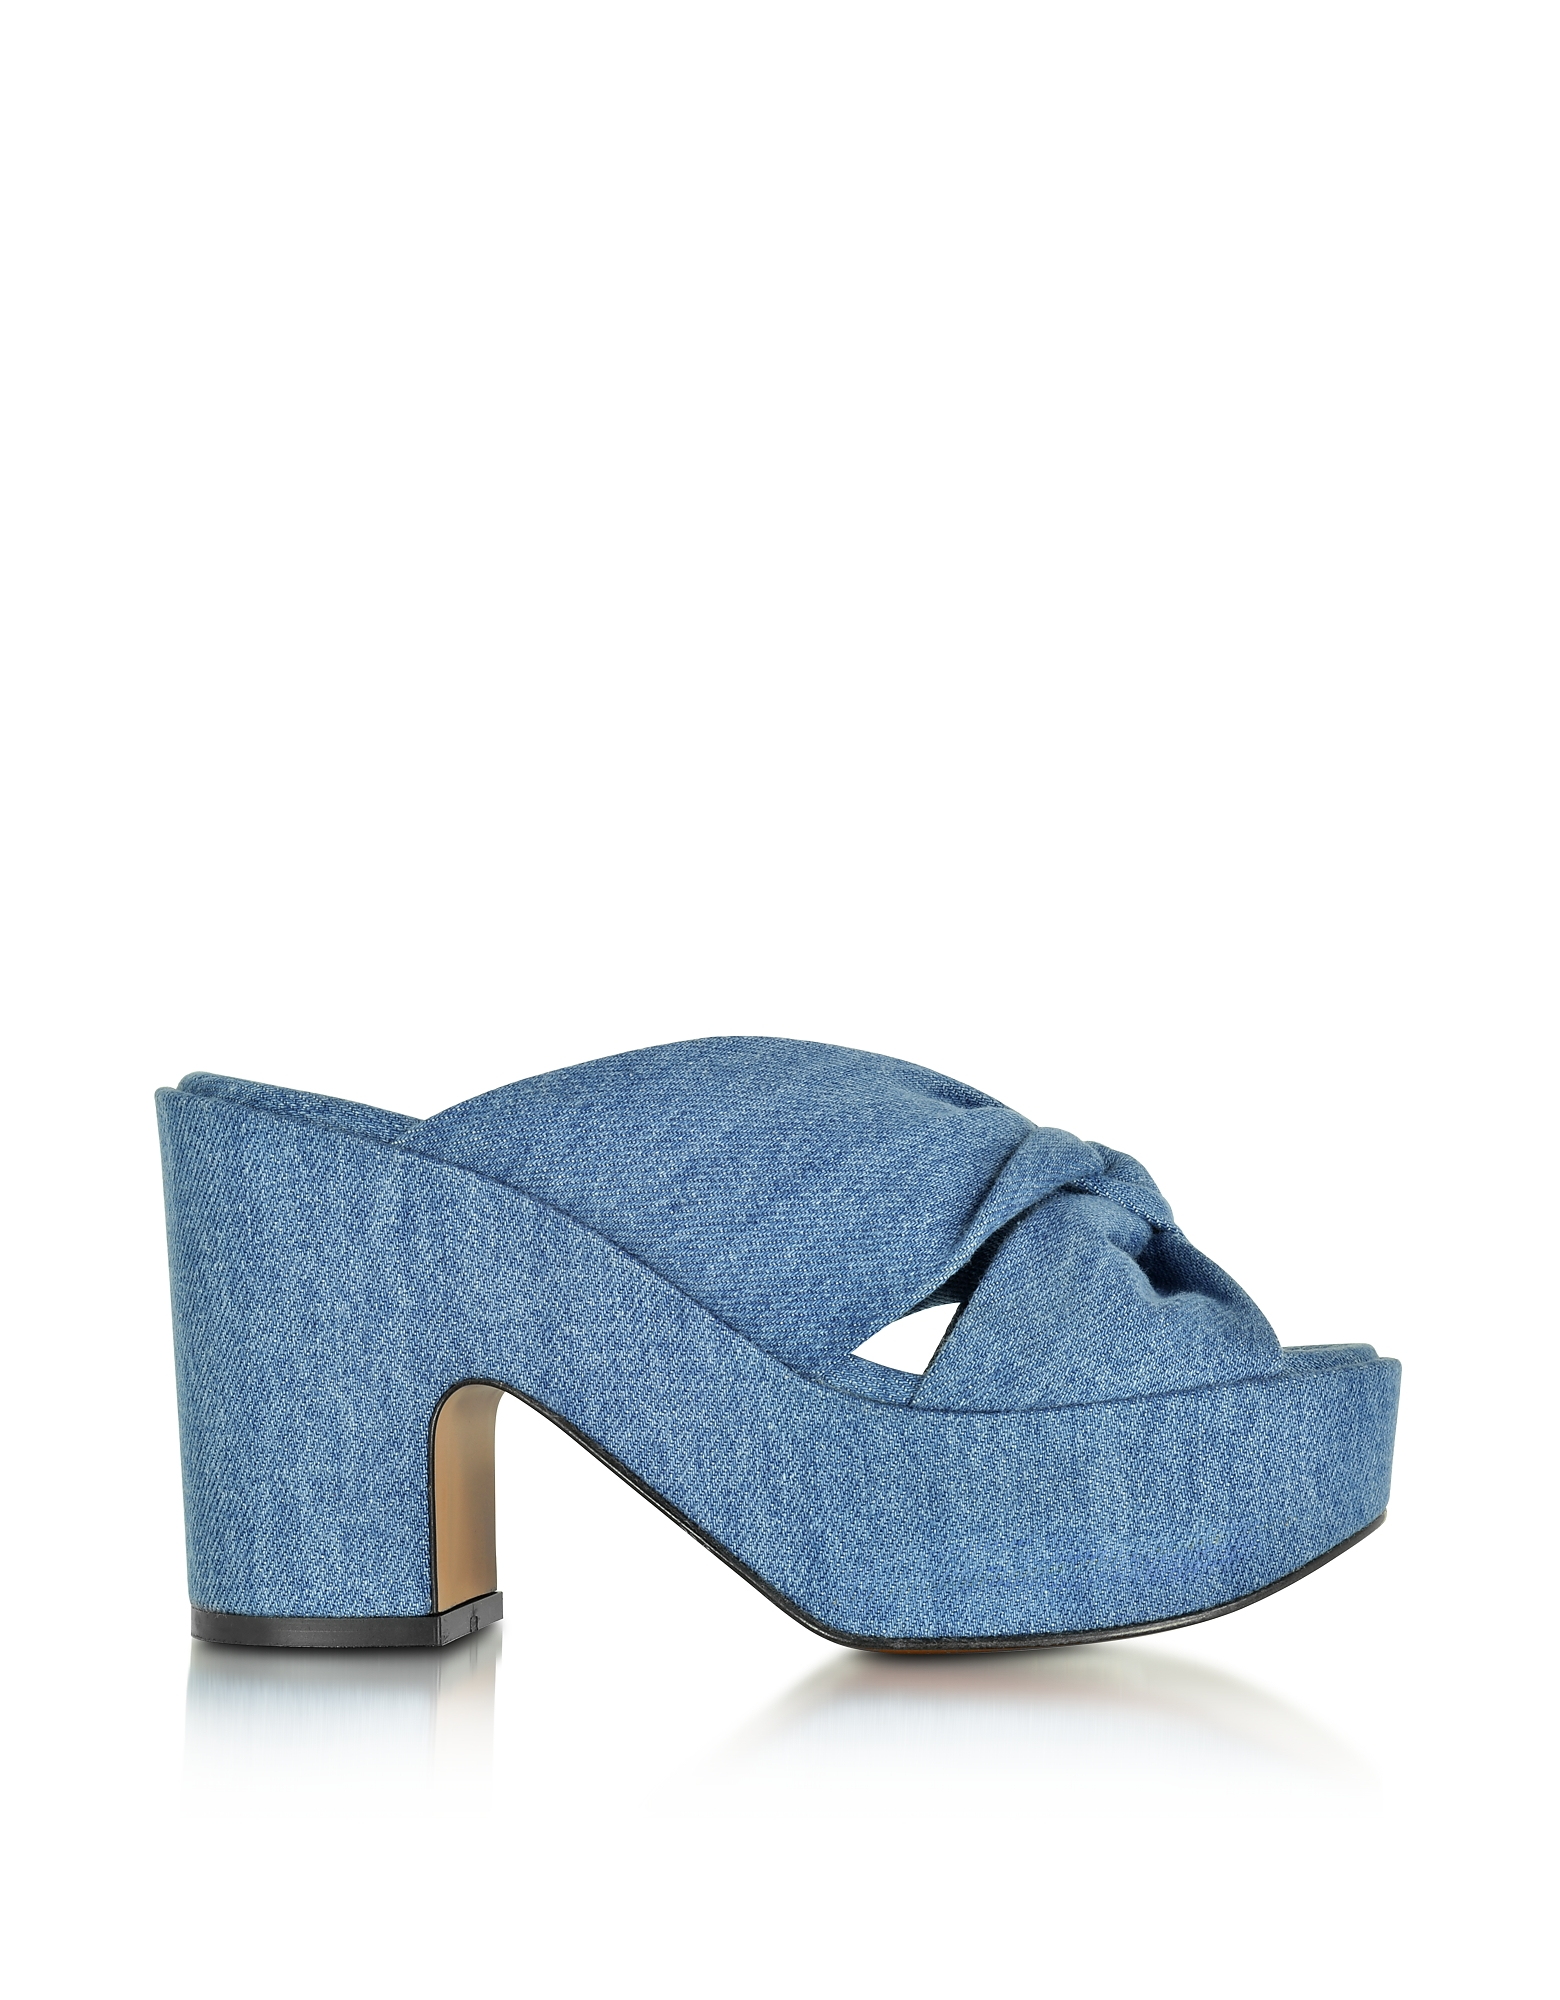 Robert Clergerie Shoes, Esthert Blue Denim Platform Slide